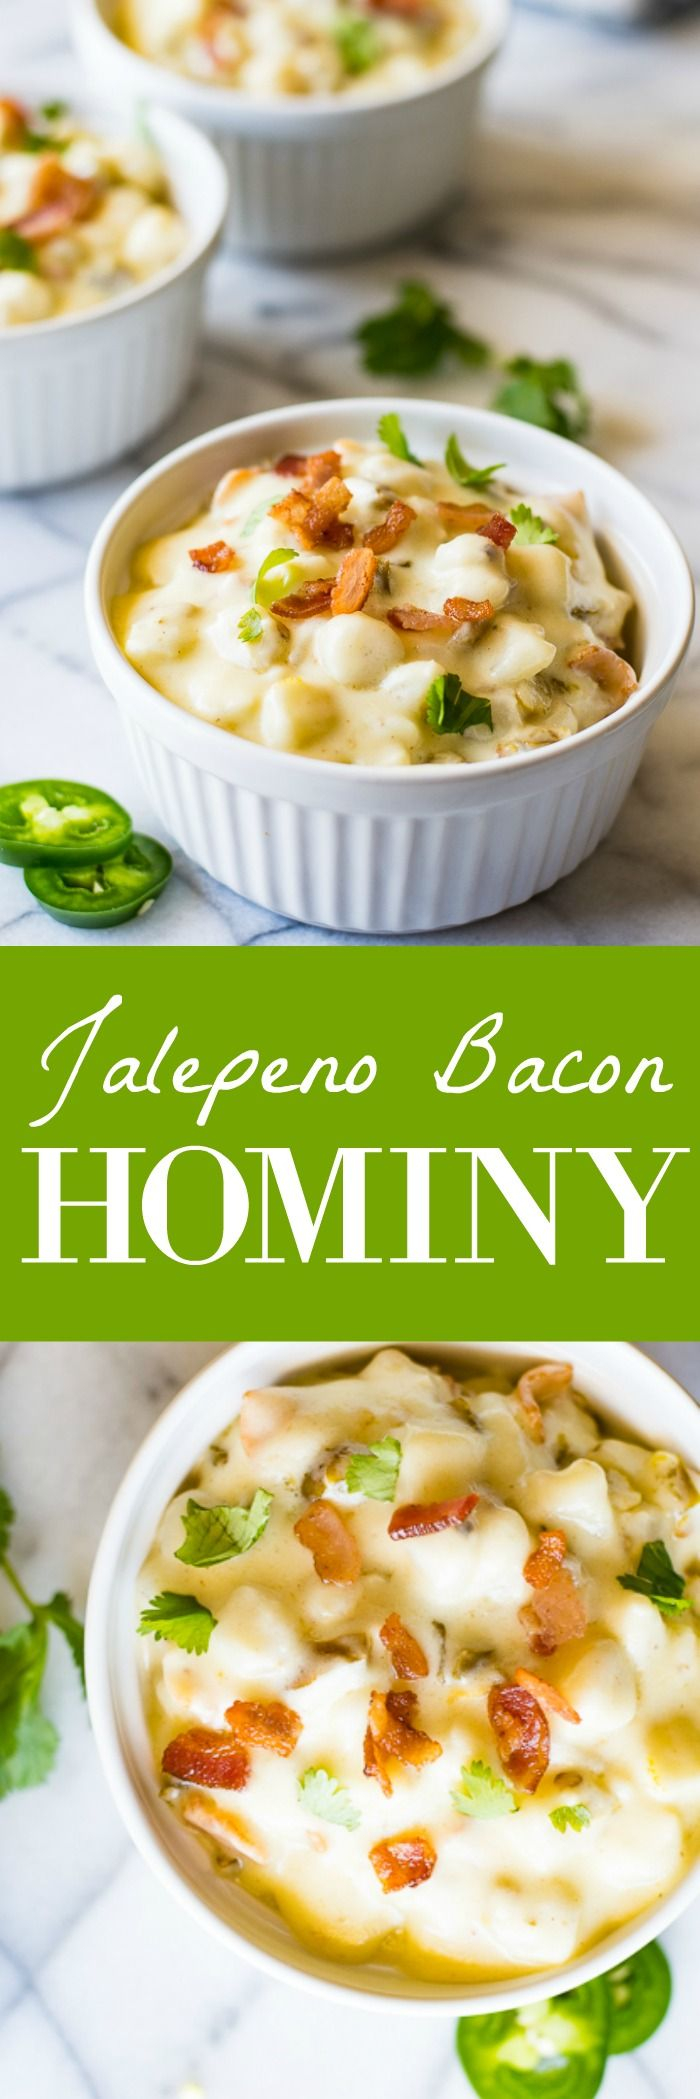 Jalapeño Bacon Hominy is ULTIMATE comfort food. This easy to make super creamy white cheddar hominy is loaded with bacon and jalapeño for extra flavor and heat. Perfect side dish! Jalapeño Bacon Hominy. Hominy. I love it. Have you had it? Do you know what it is? Most likely you've seen it in the grocery...Read More »